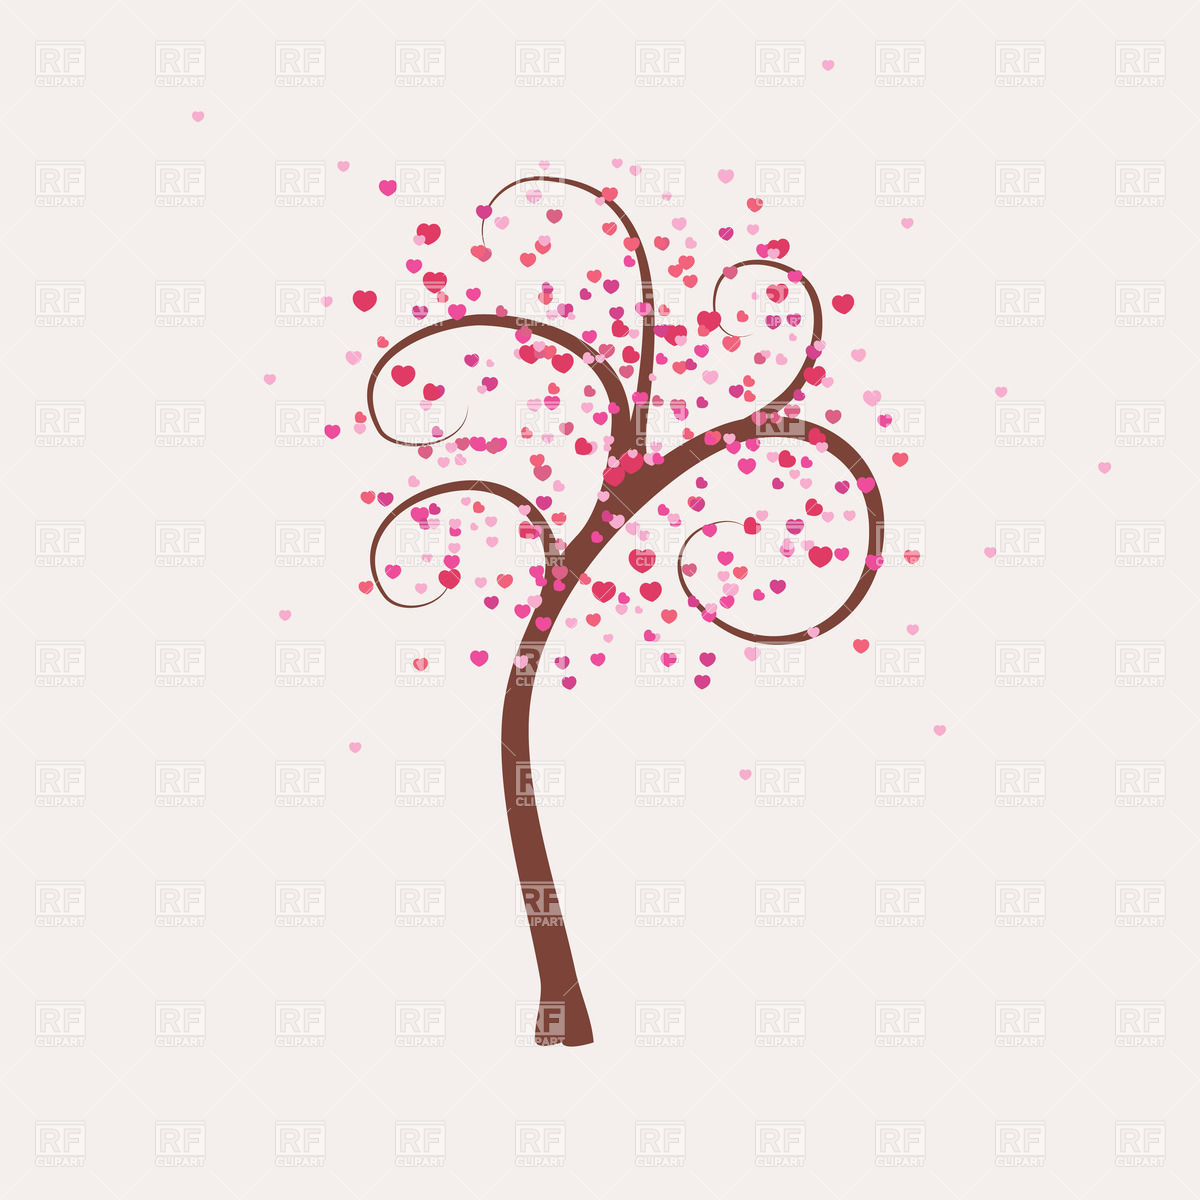 Tree With Curly Branches Download Royalty Free Vector Clipart  Eps